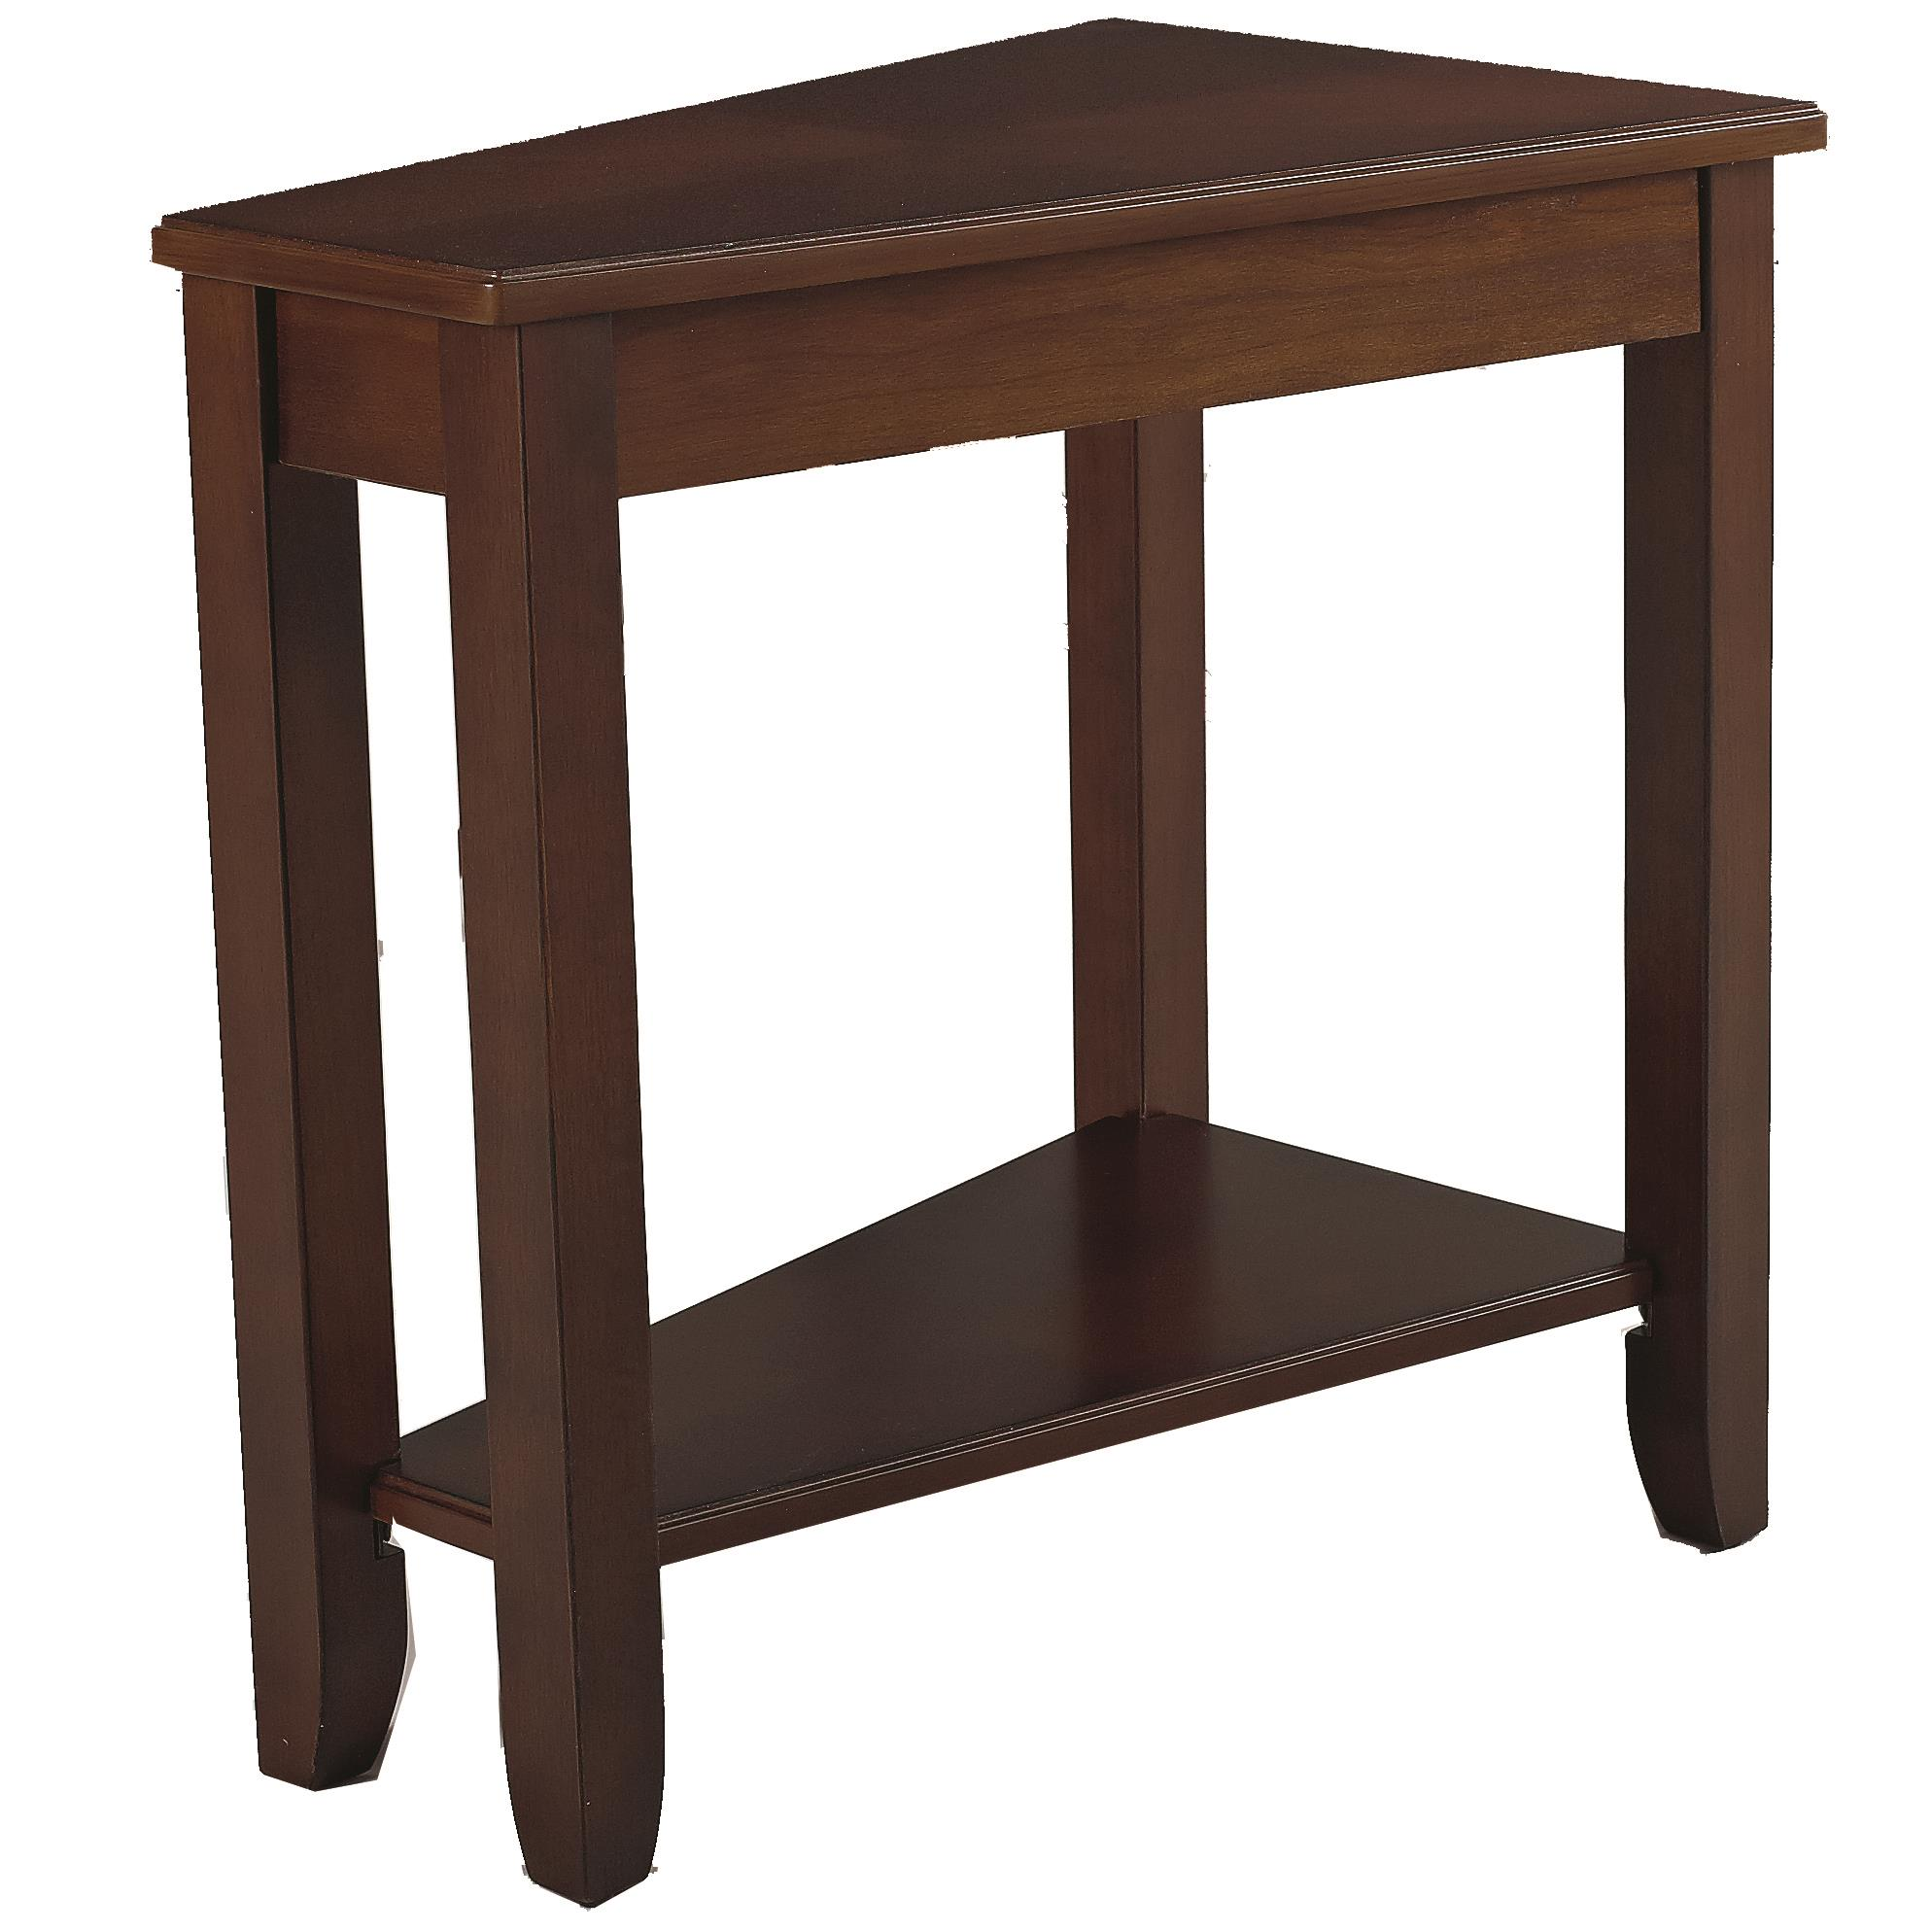 Hammary Chairsides Cherry Chairside Table - Item Number: T00221-00